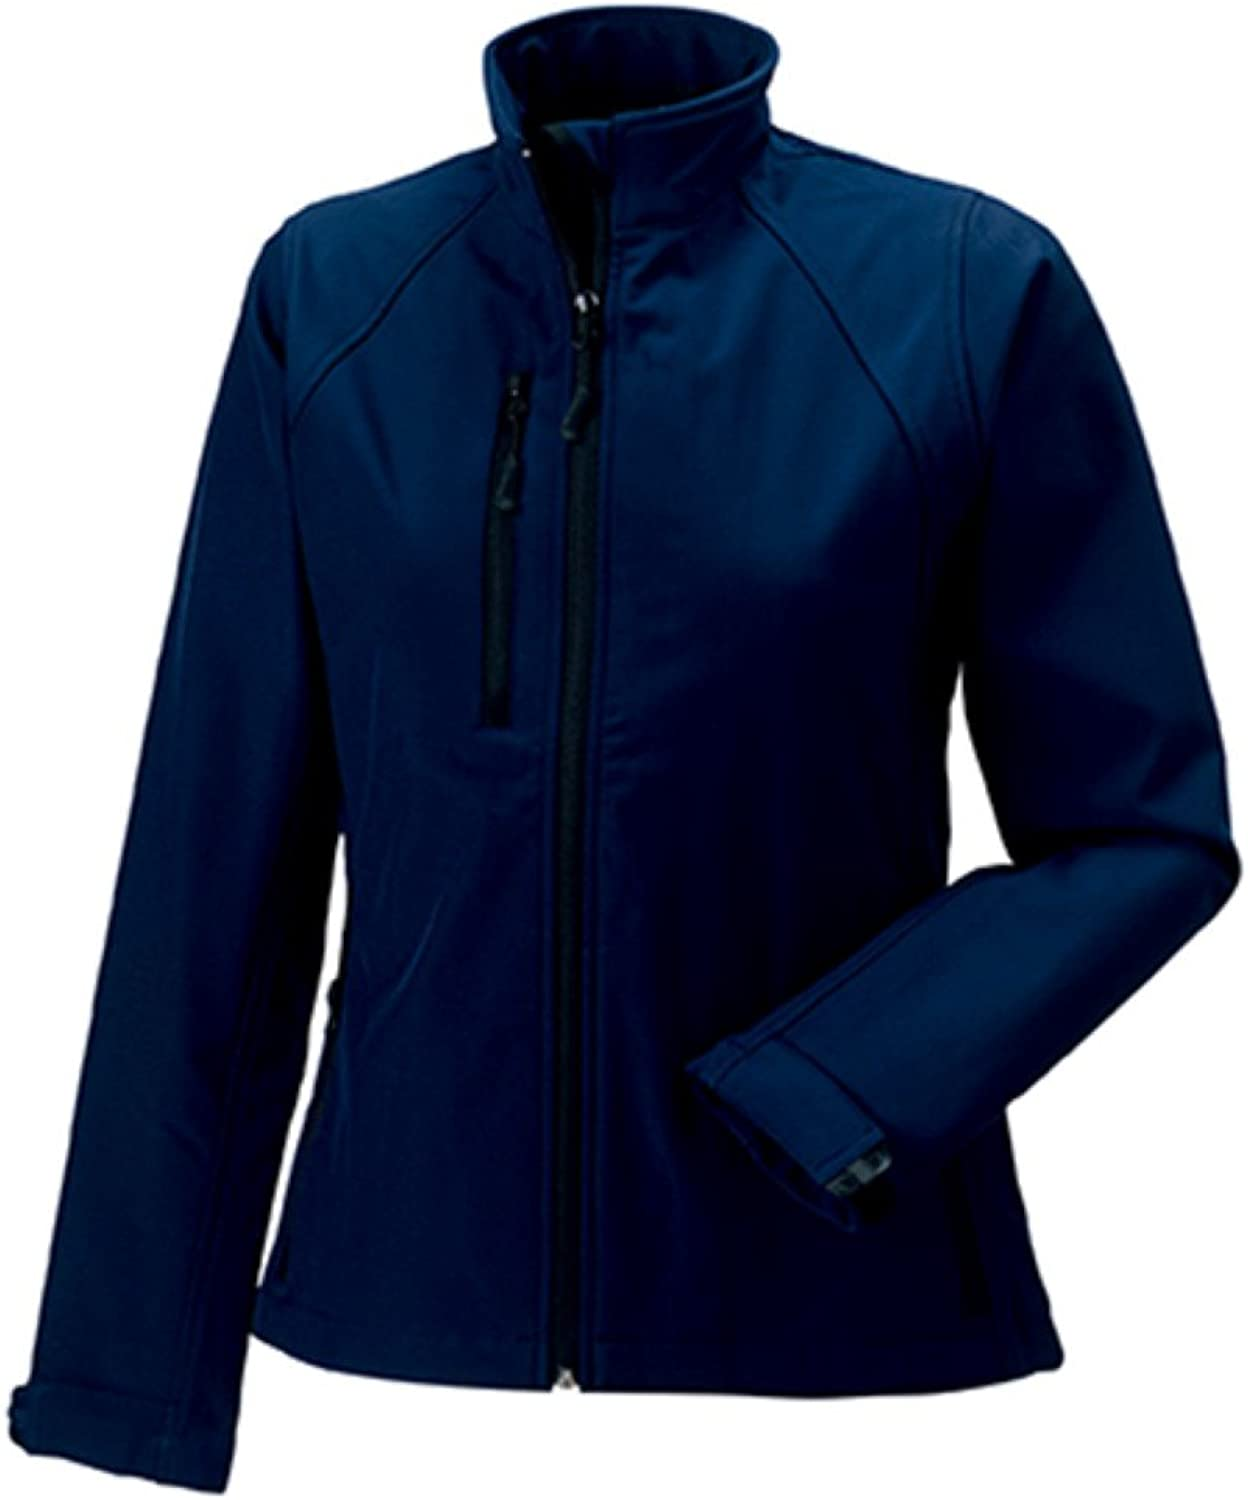 Jerzees Colours Ladies Soft Shell Jacket   colorFrench Navy   Size4XL